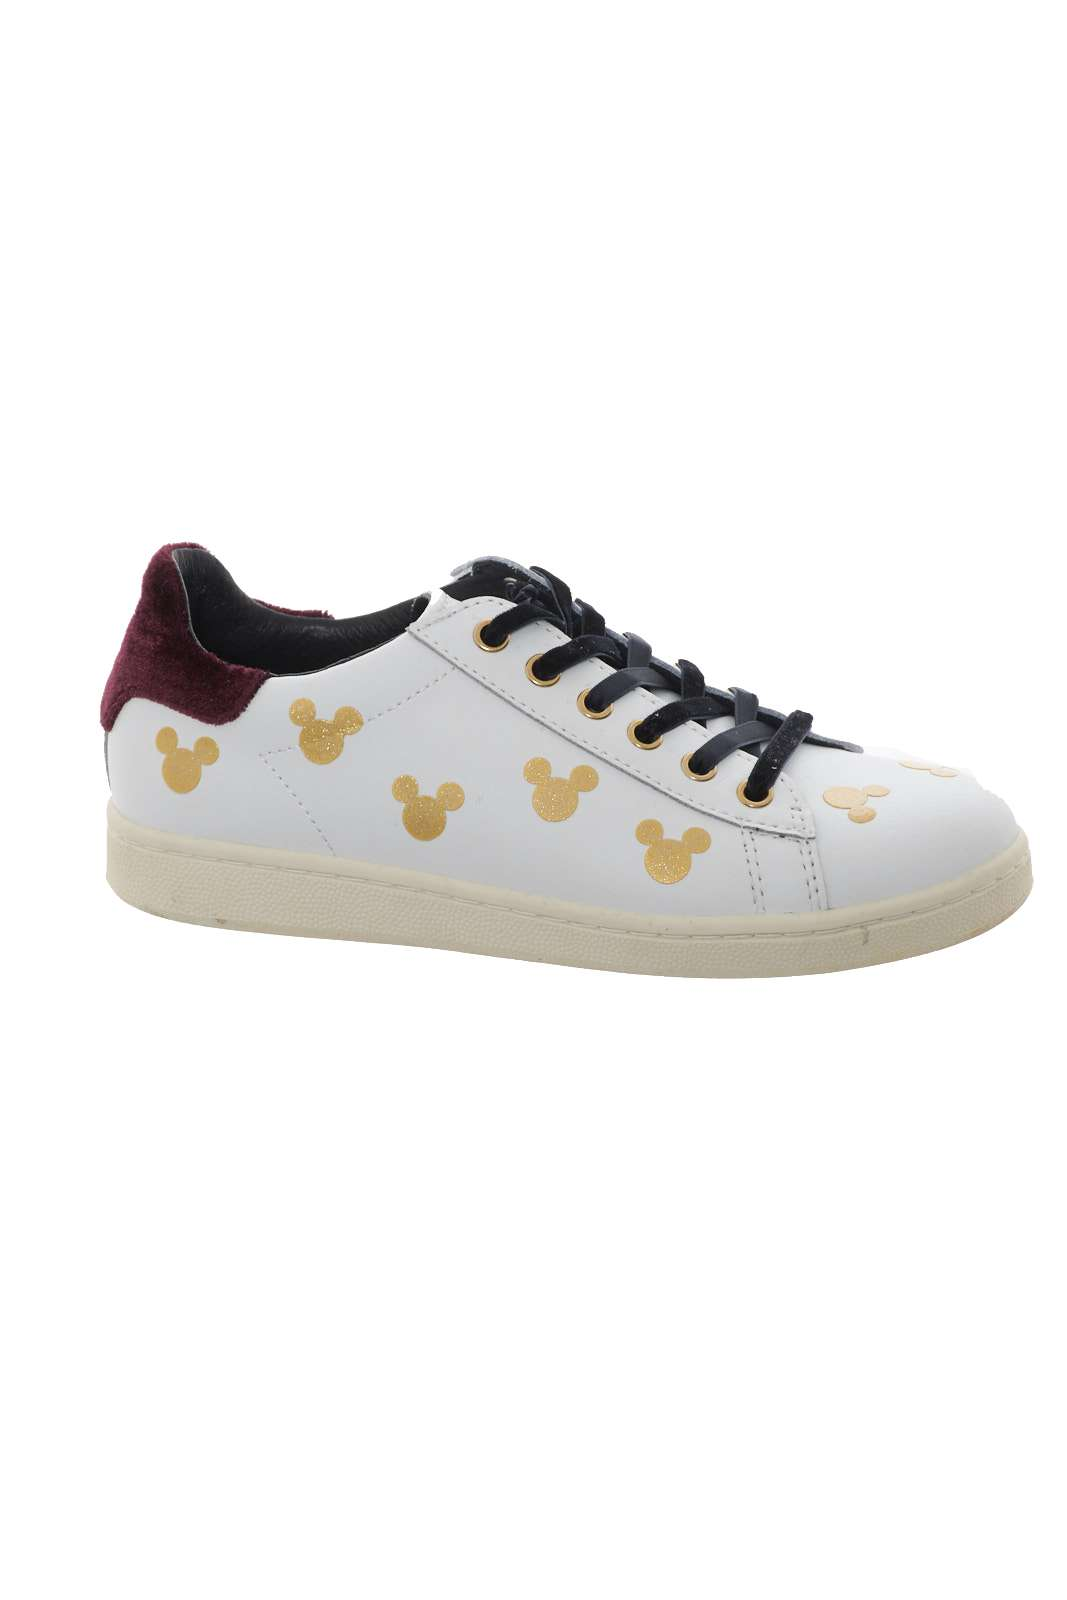 https://www.parmax.com/media/catalog/product/P/E/PE-outlet-parmax-sneakers-bambina-MoaConcept-mdj207-A_1.jpg